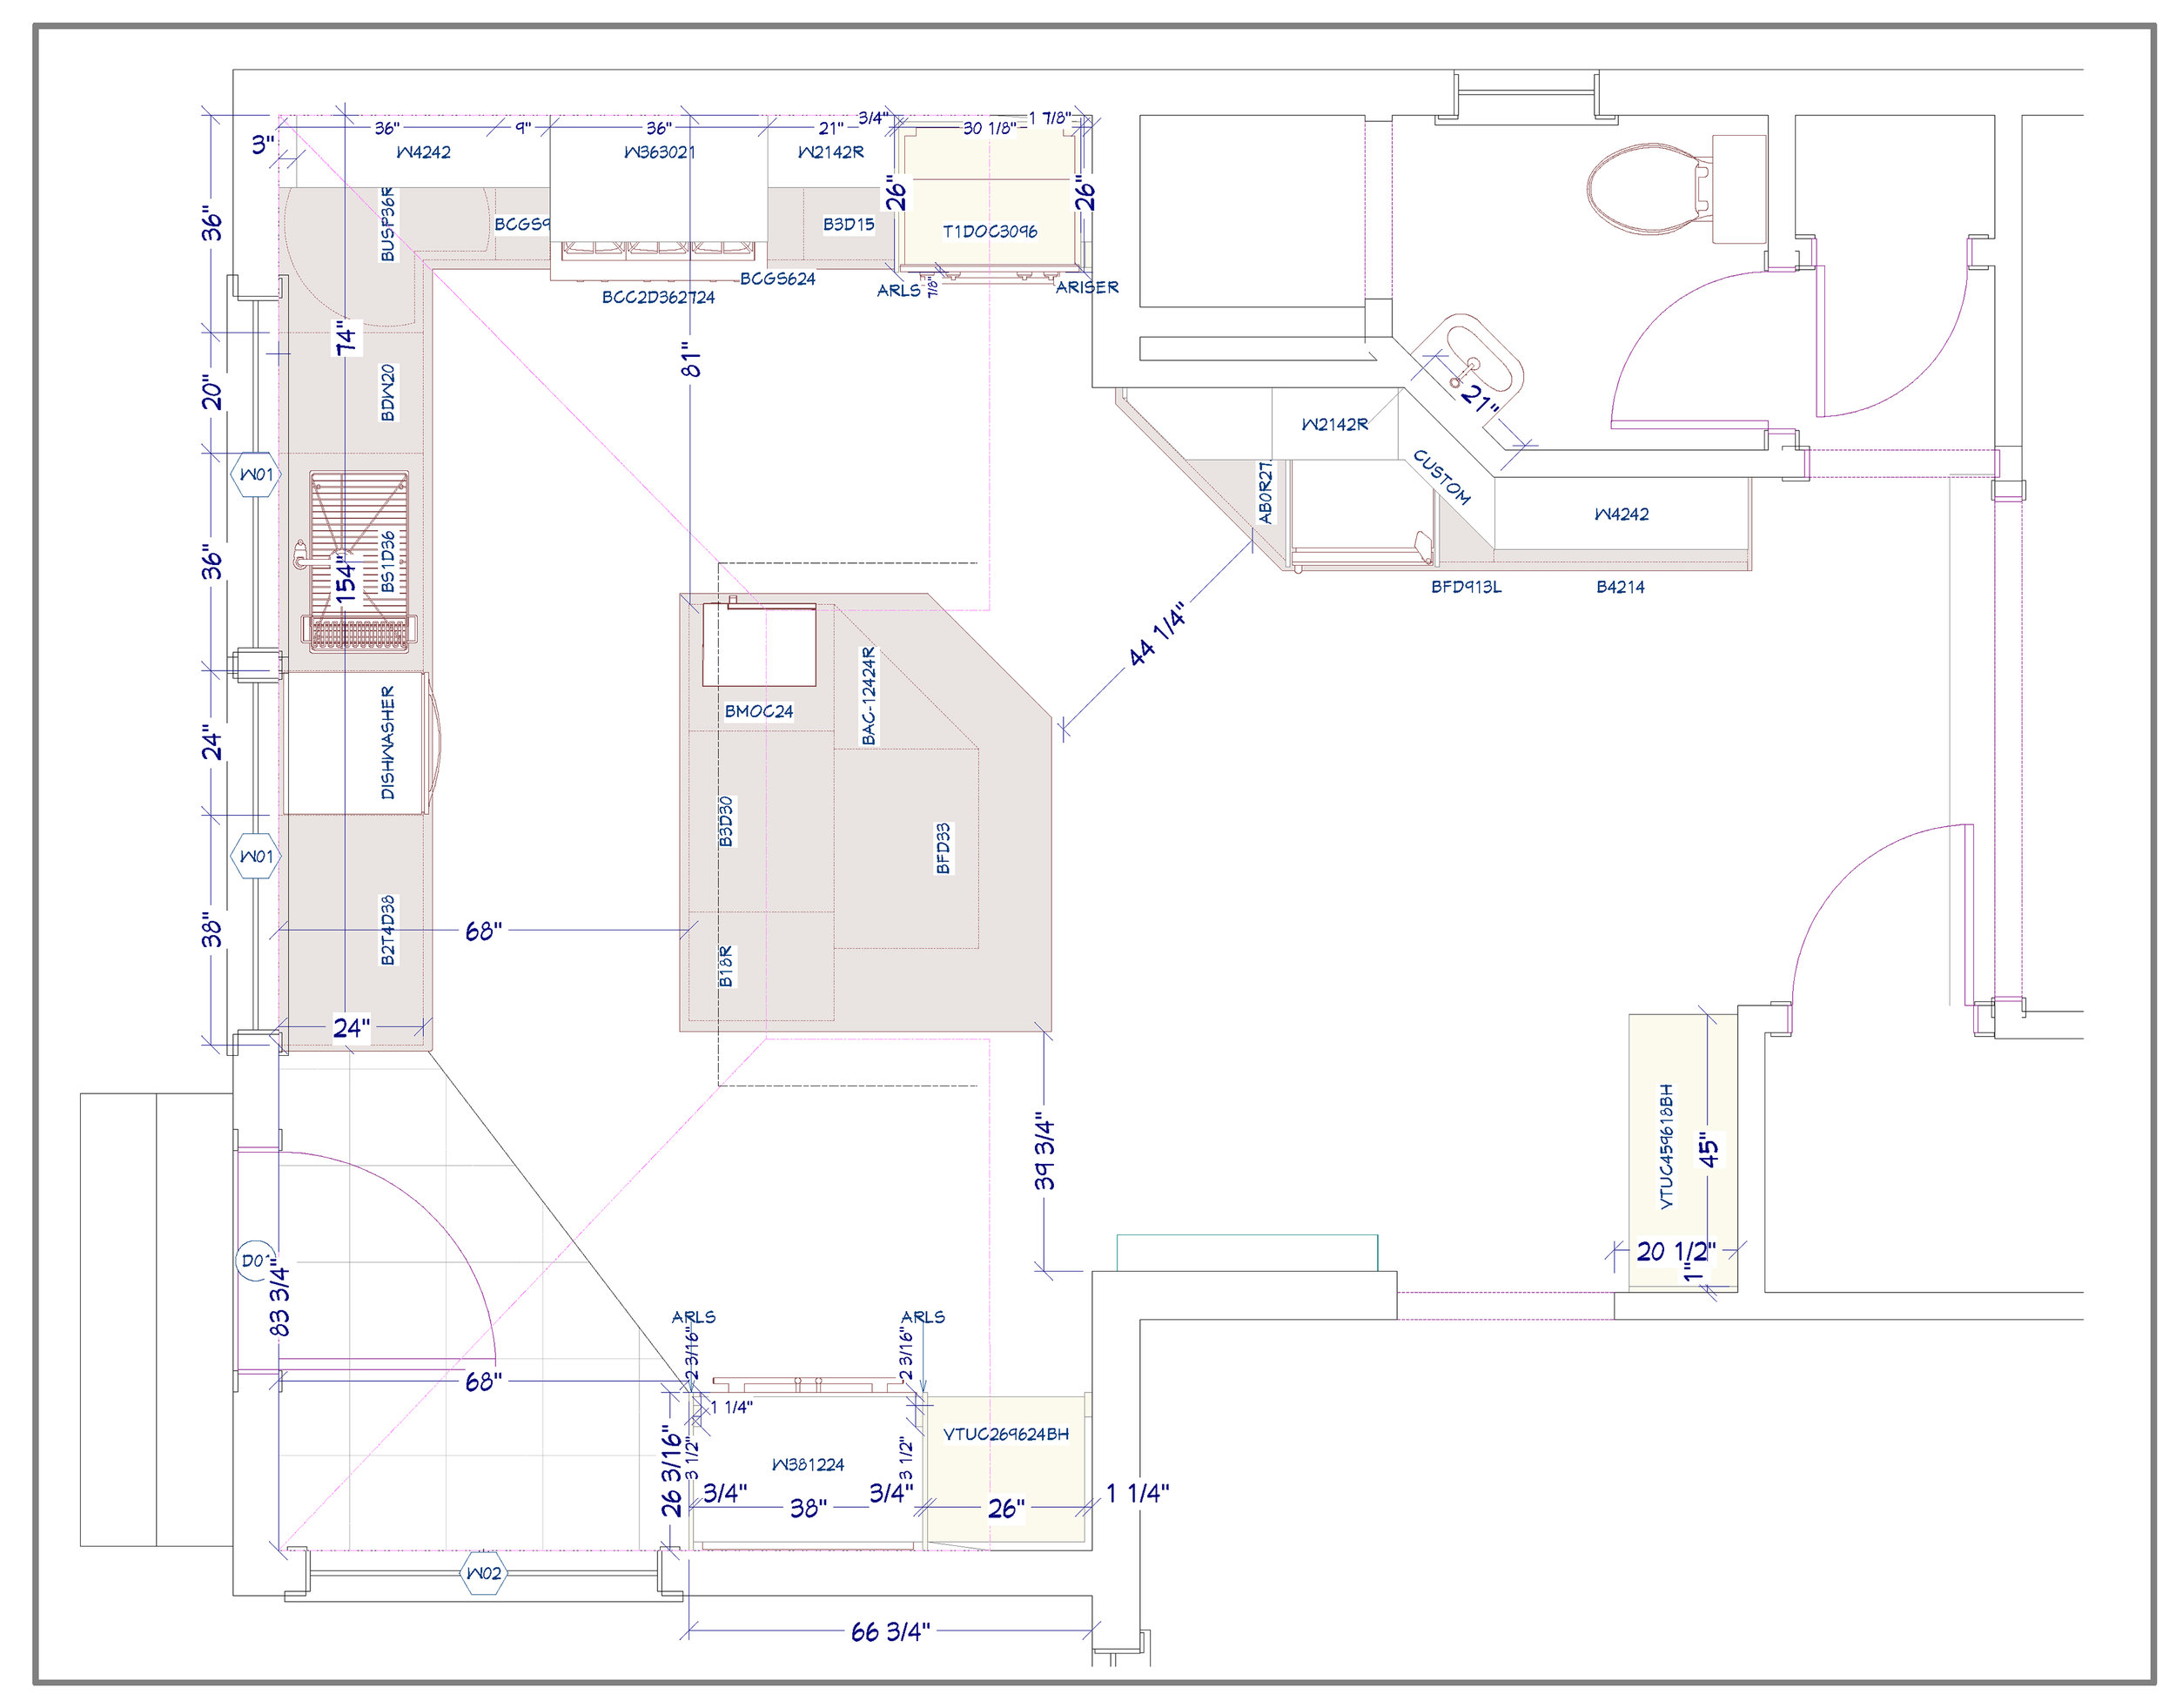 Planning the project - OUR HOUSE design + build, Reading MA